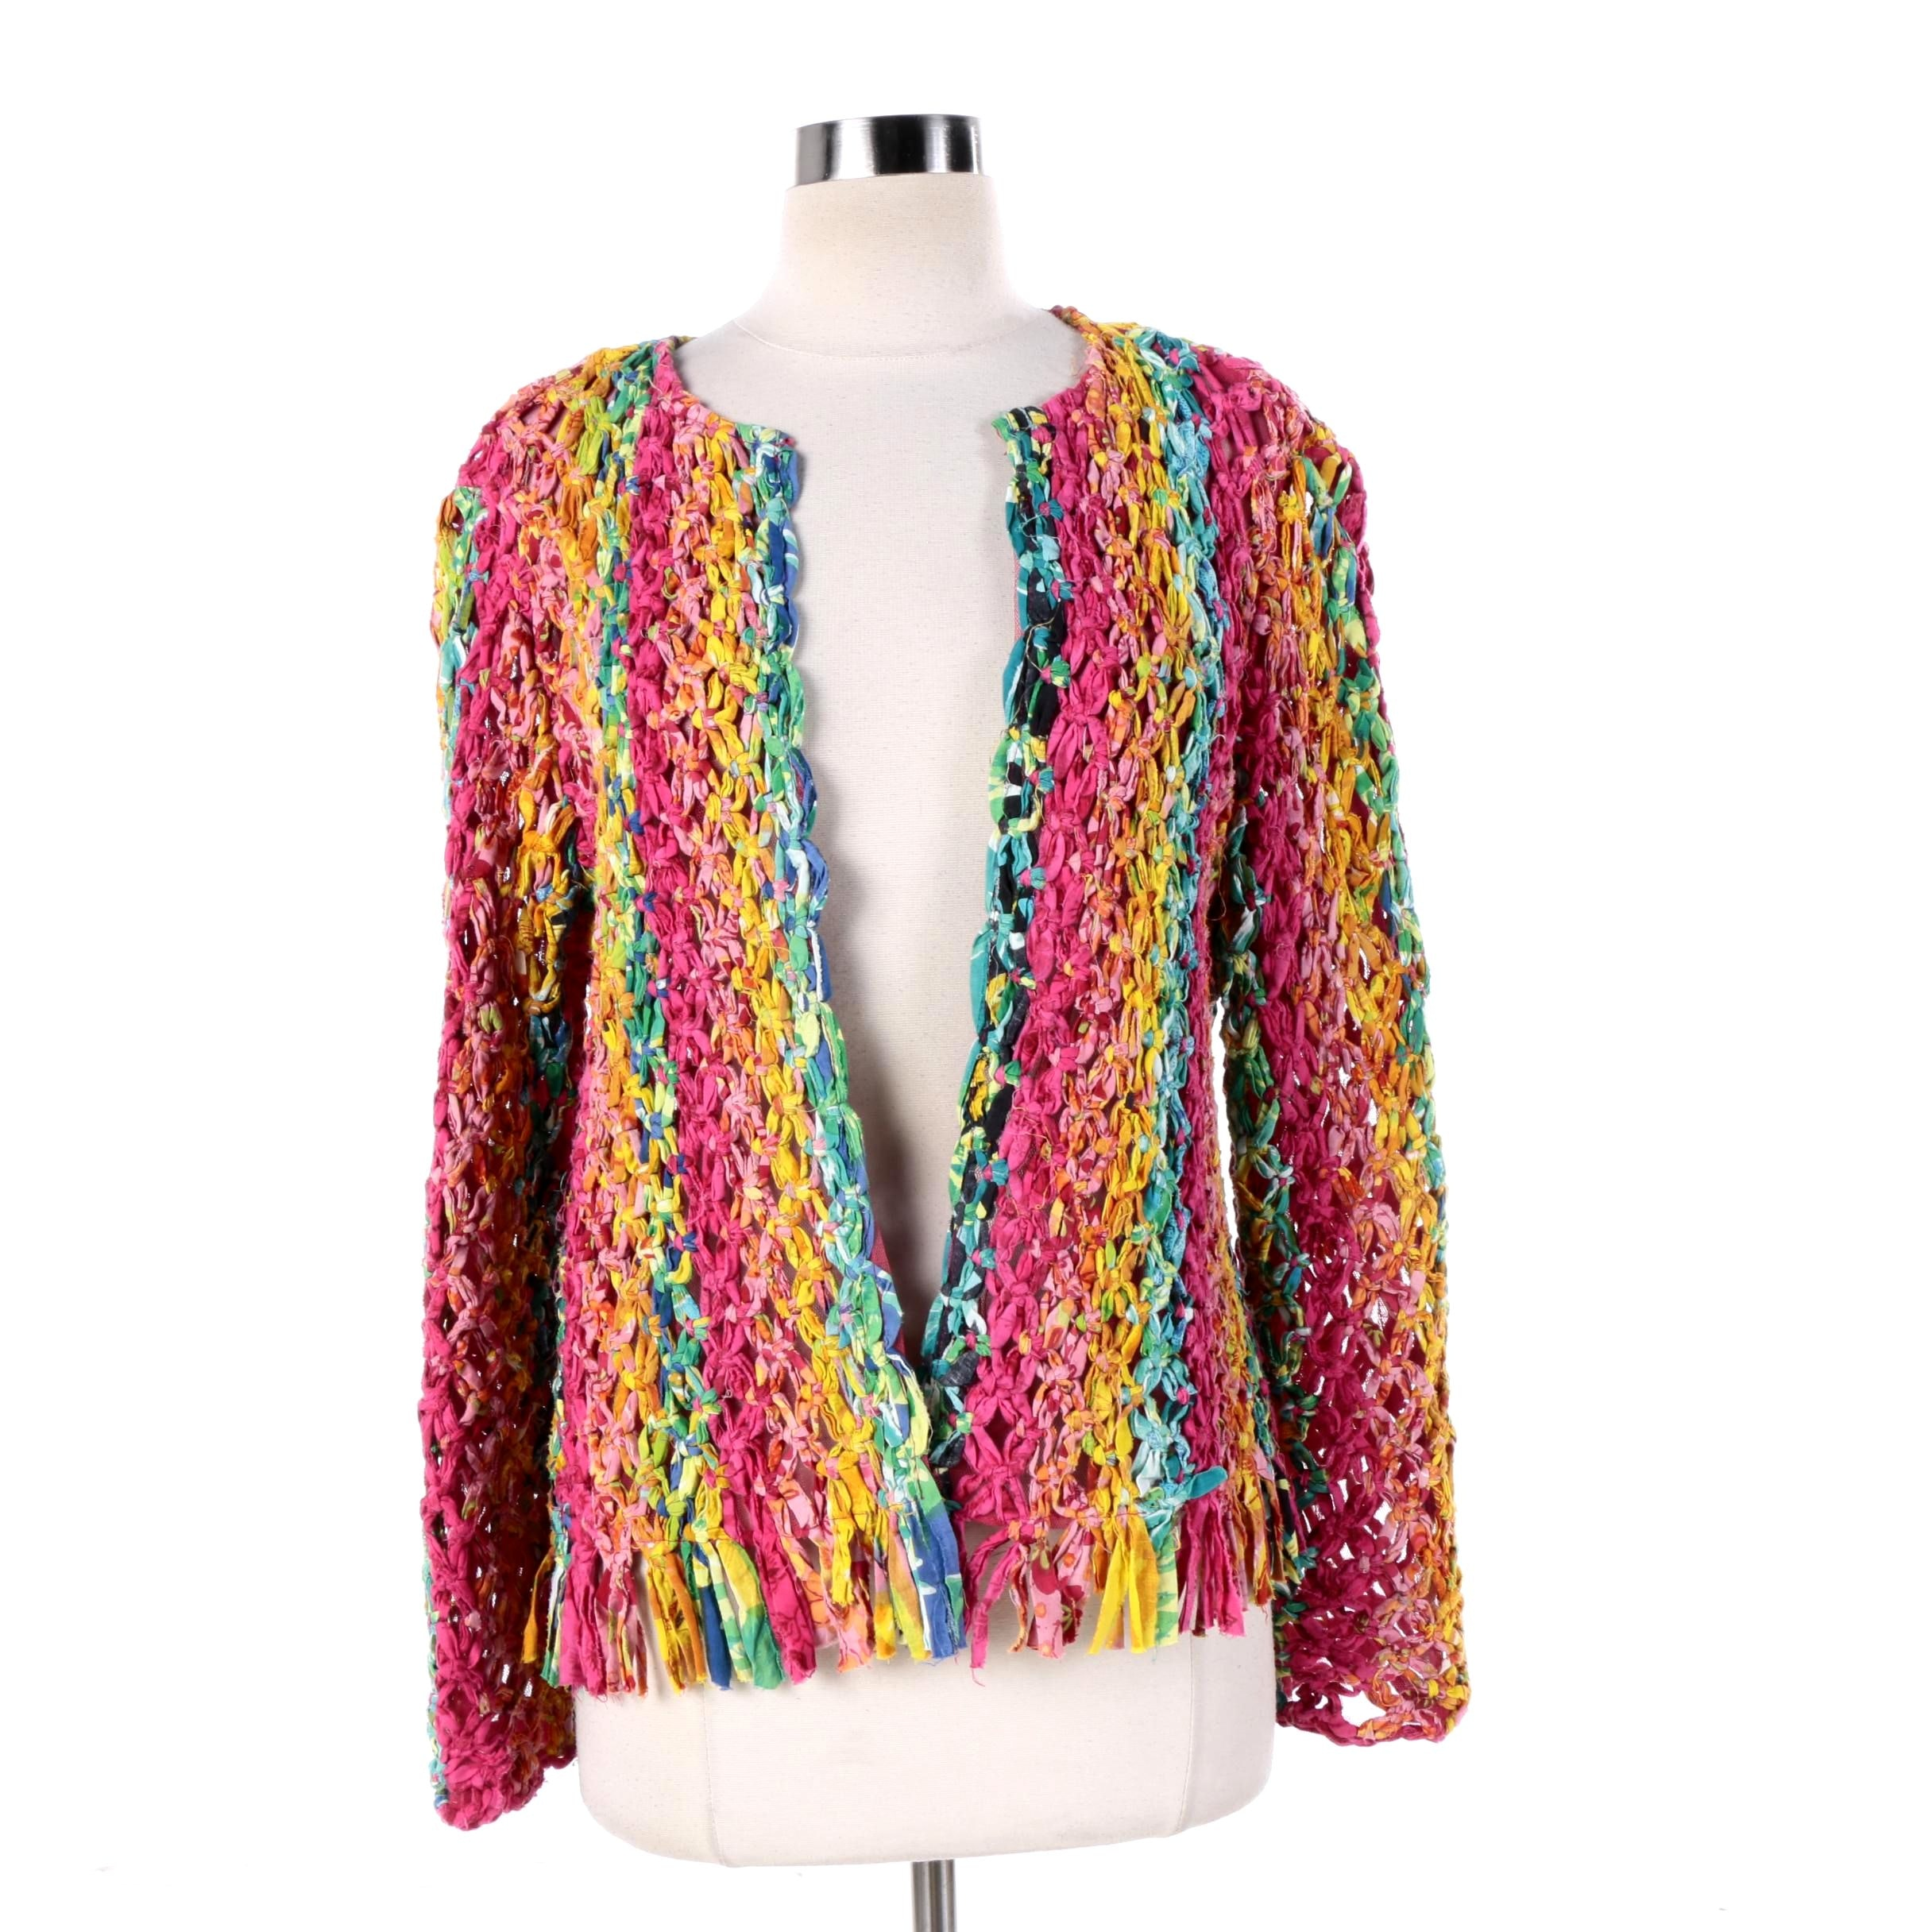 Women's Sandy Starkman Wearable Art Knotted Rag Rainbow Jacket